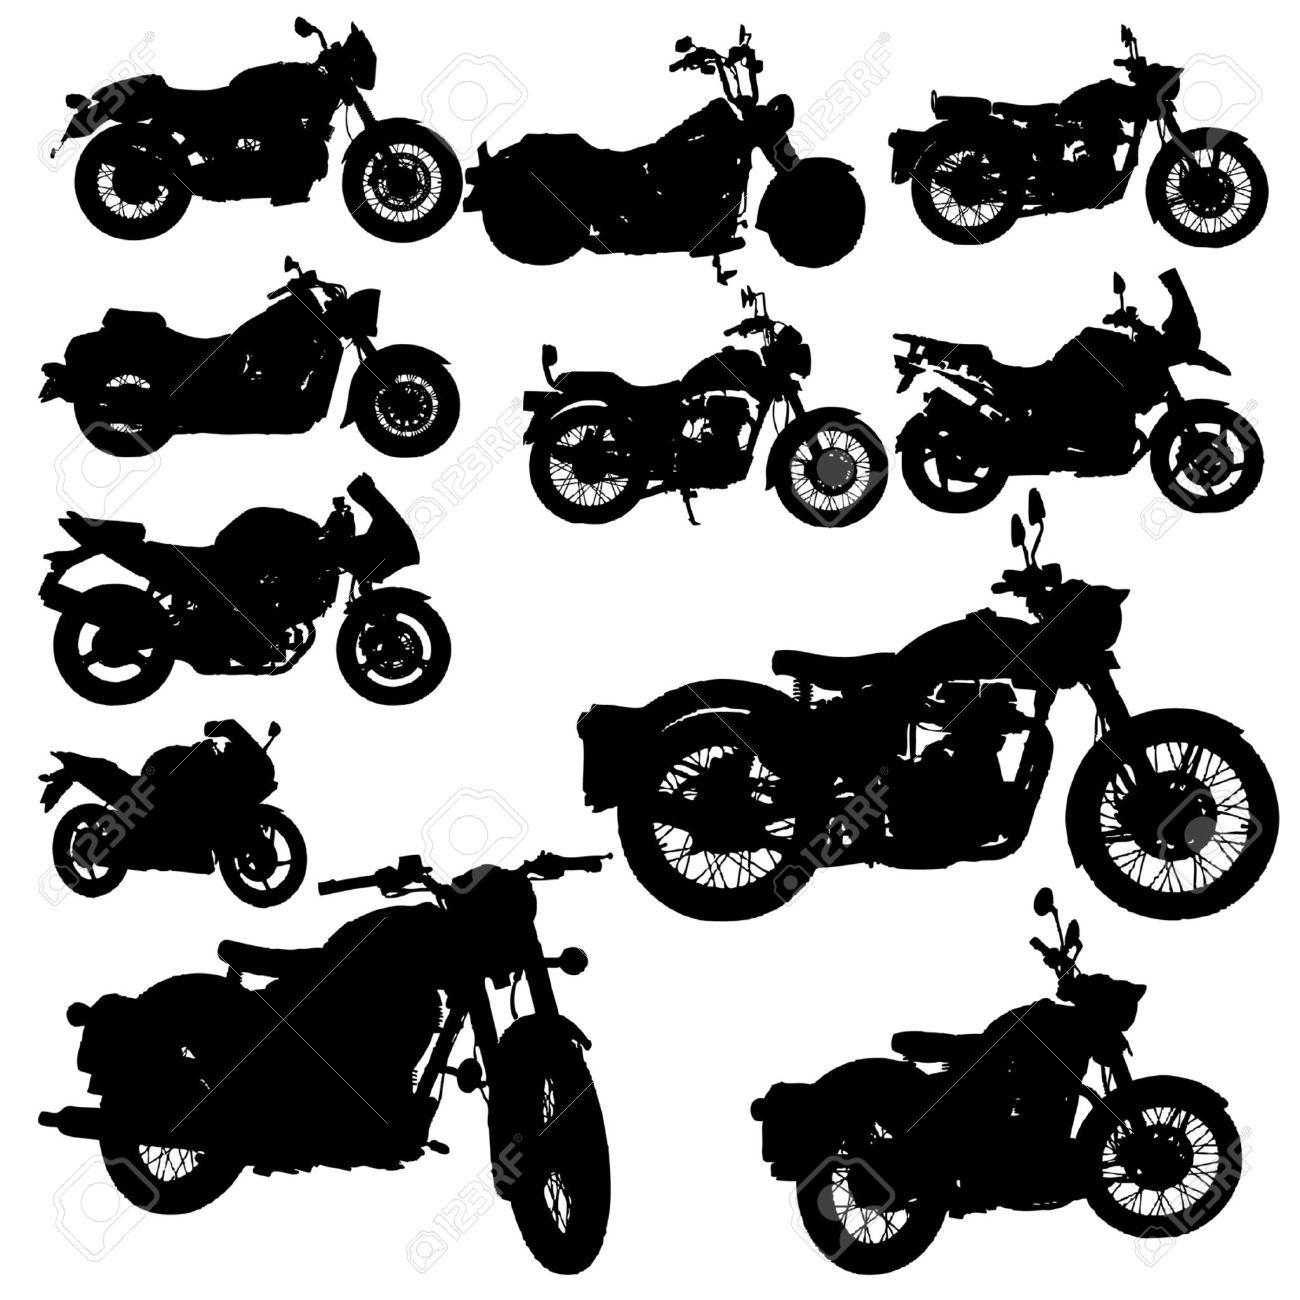 hight resolution of motorcycle classic vector